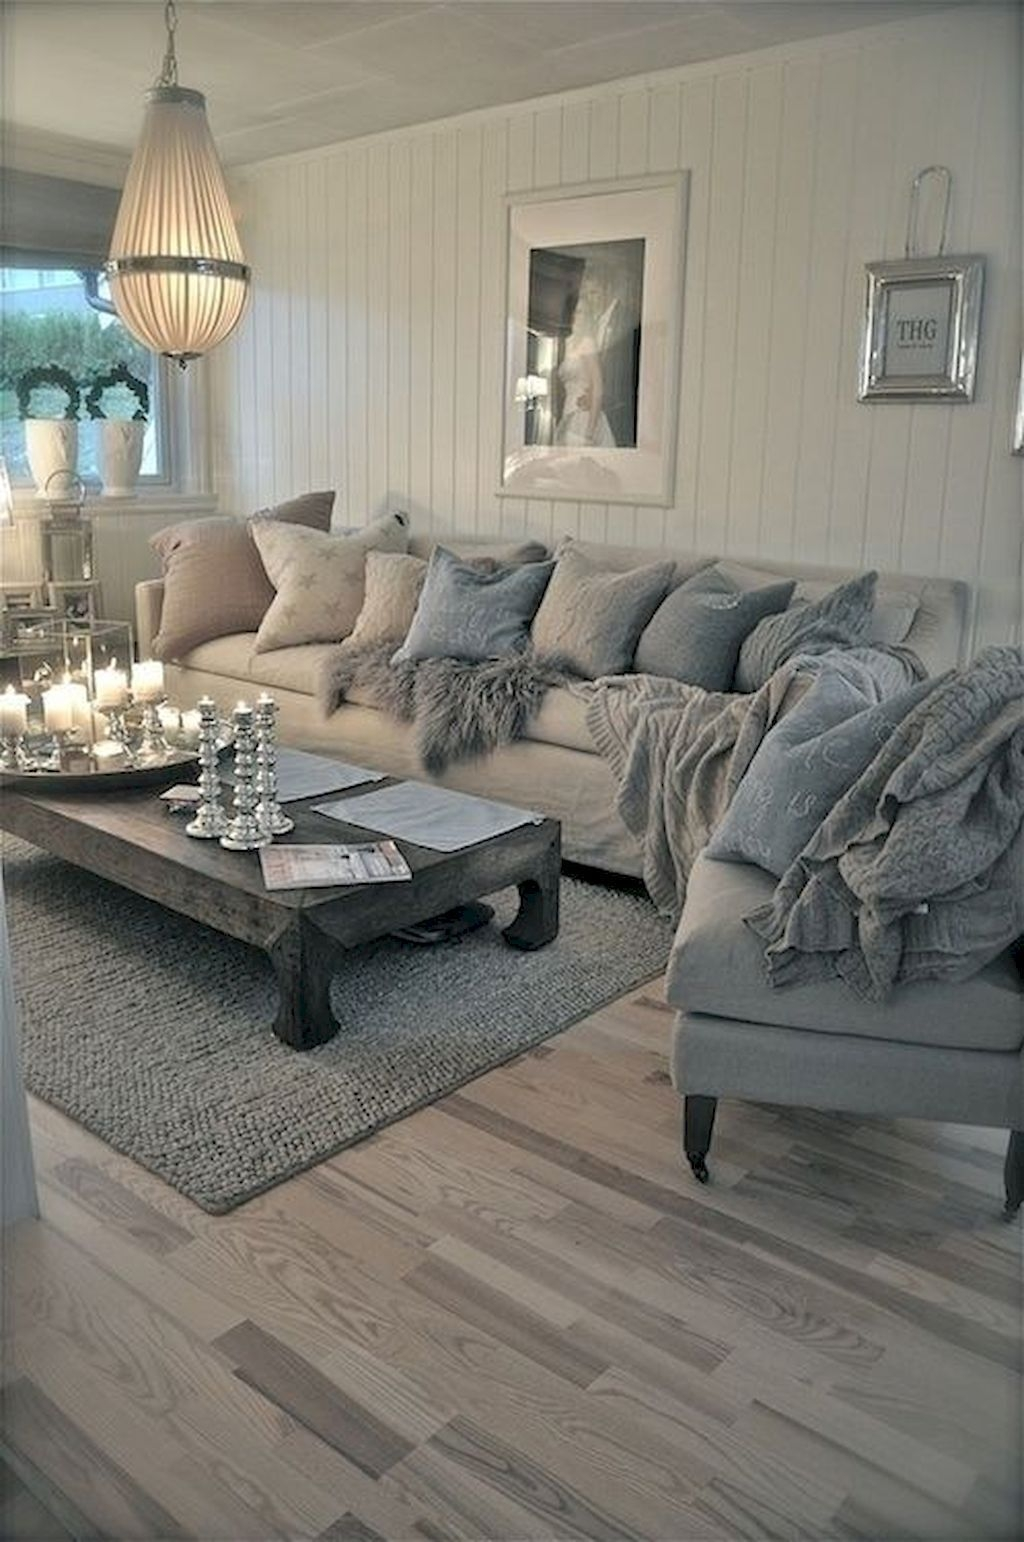 Cozy French Country Living Room Decor Ideas 04